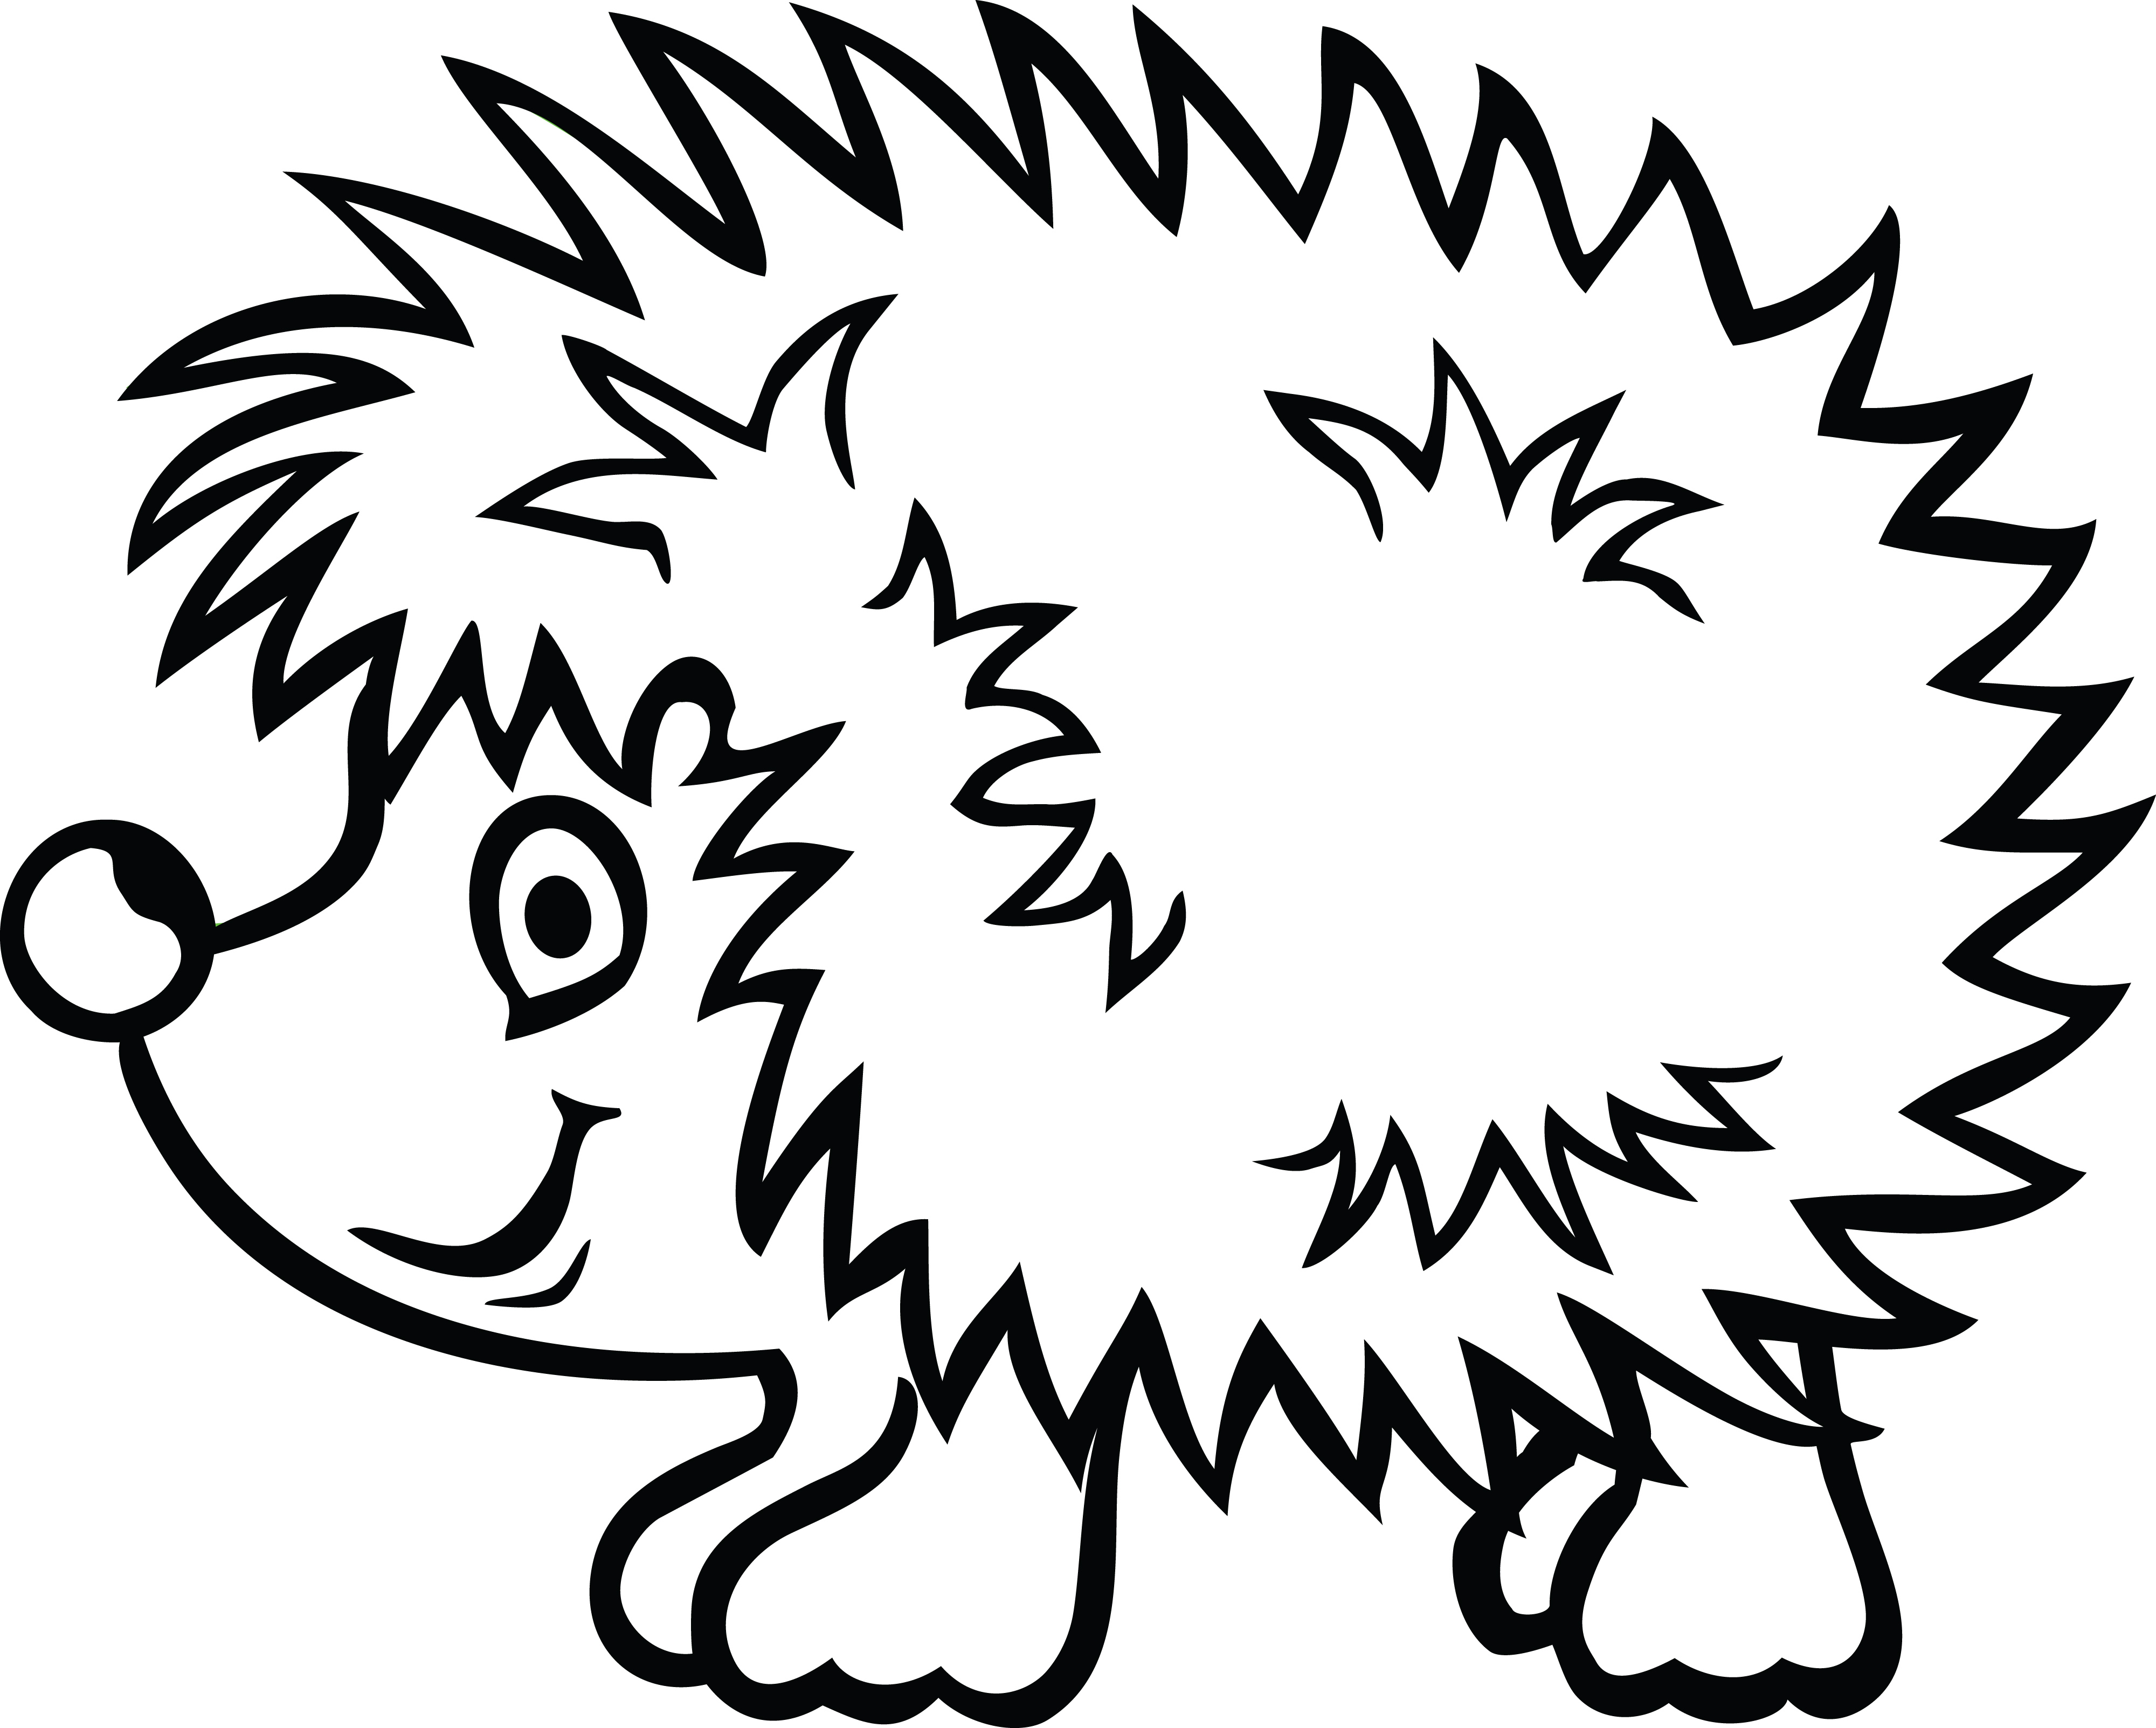 4000x3206 Hedgehog Png Black And White Transparent Hedgehog Black And White